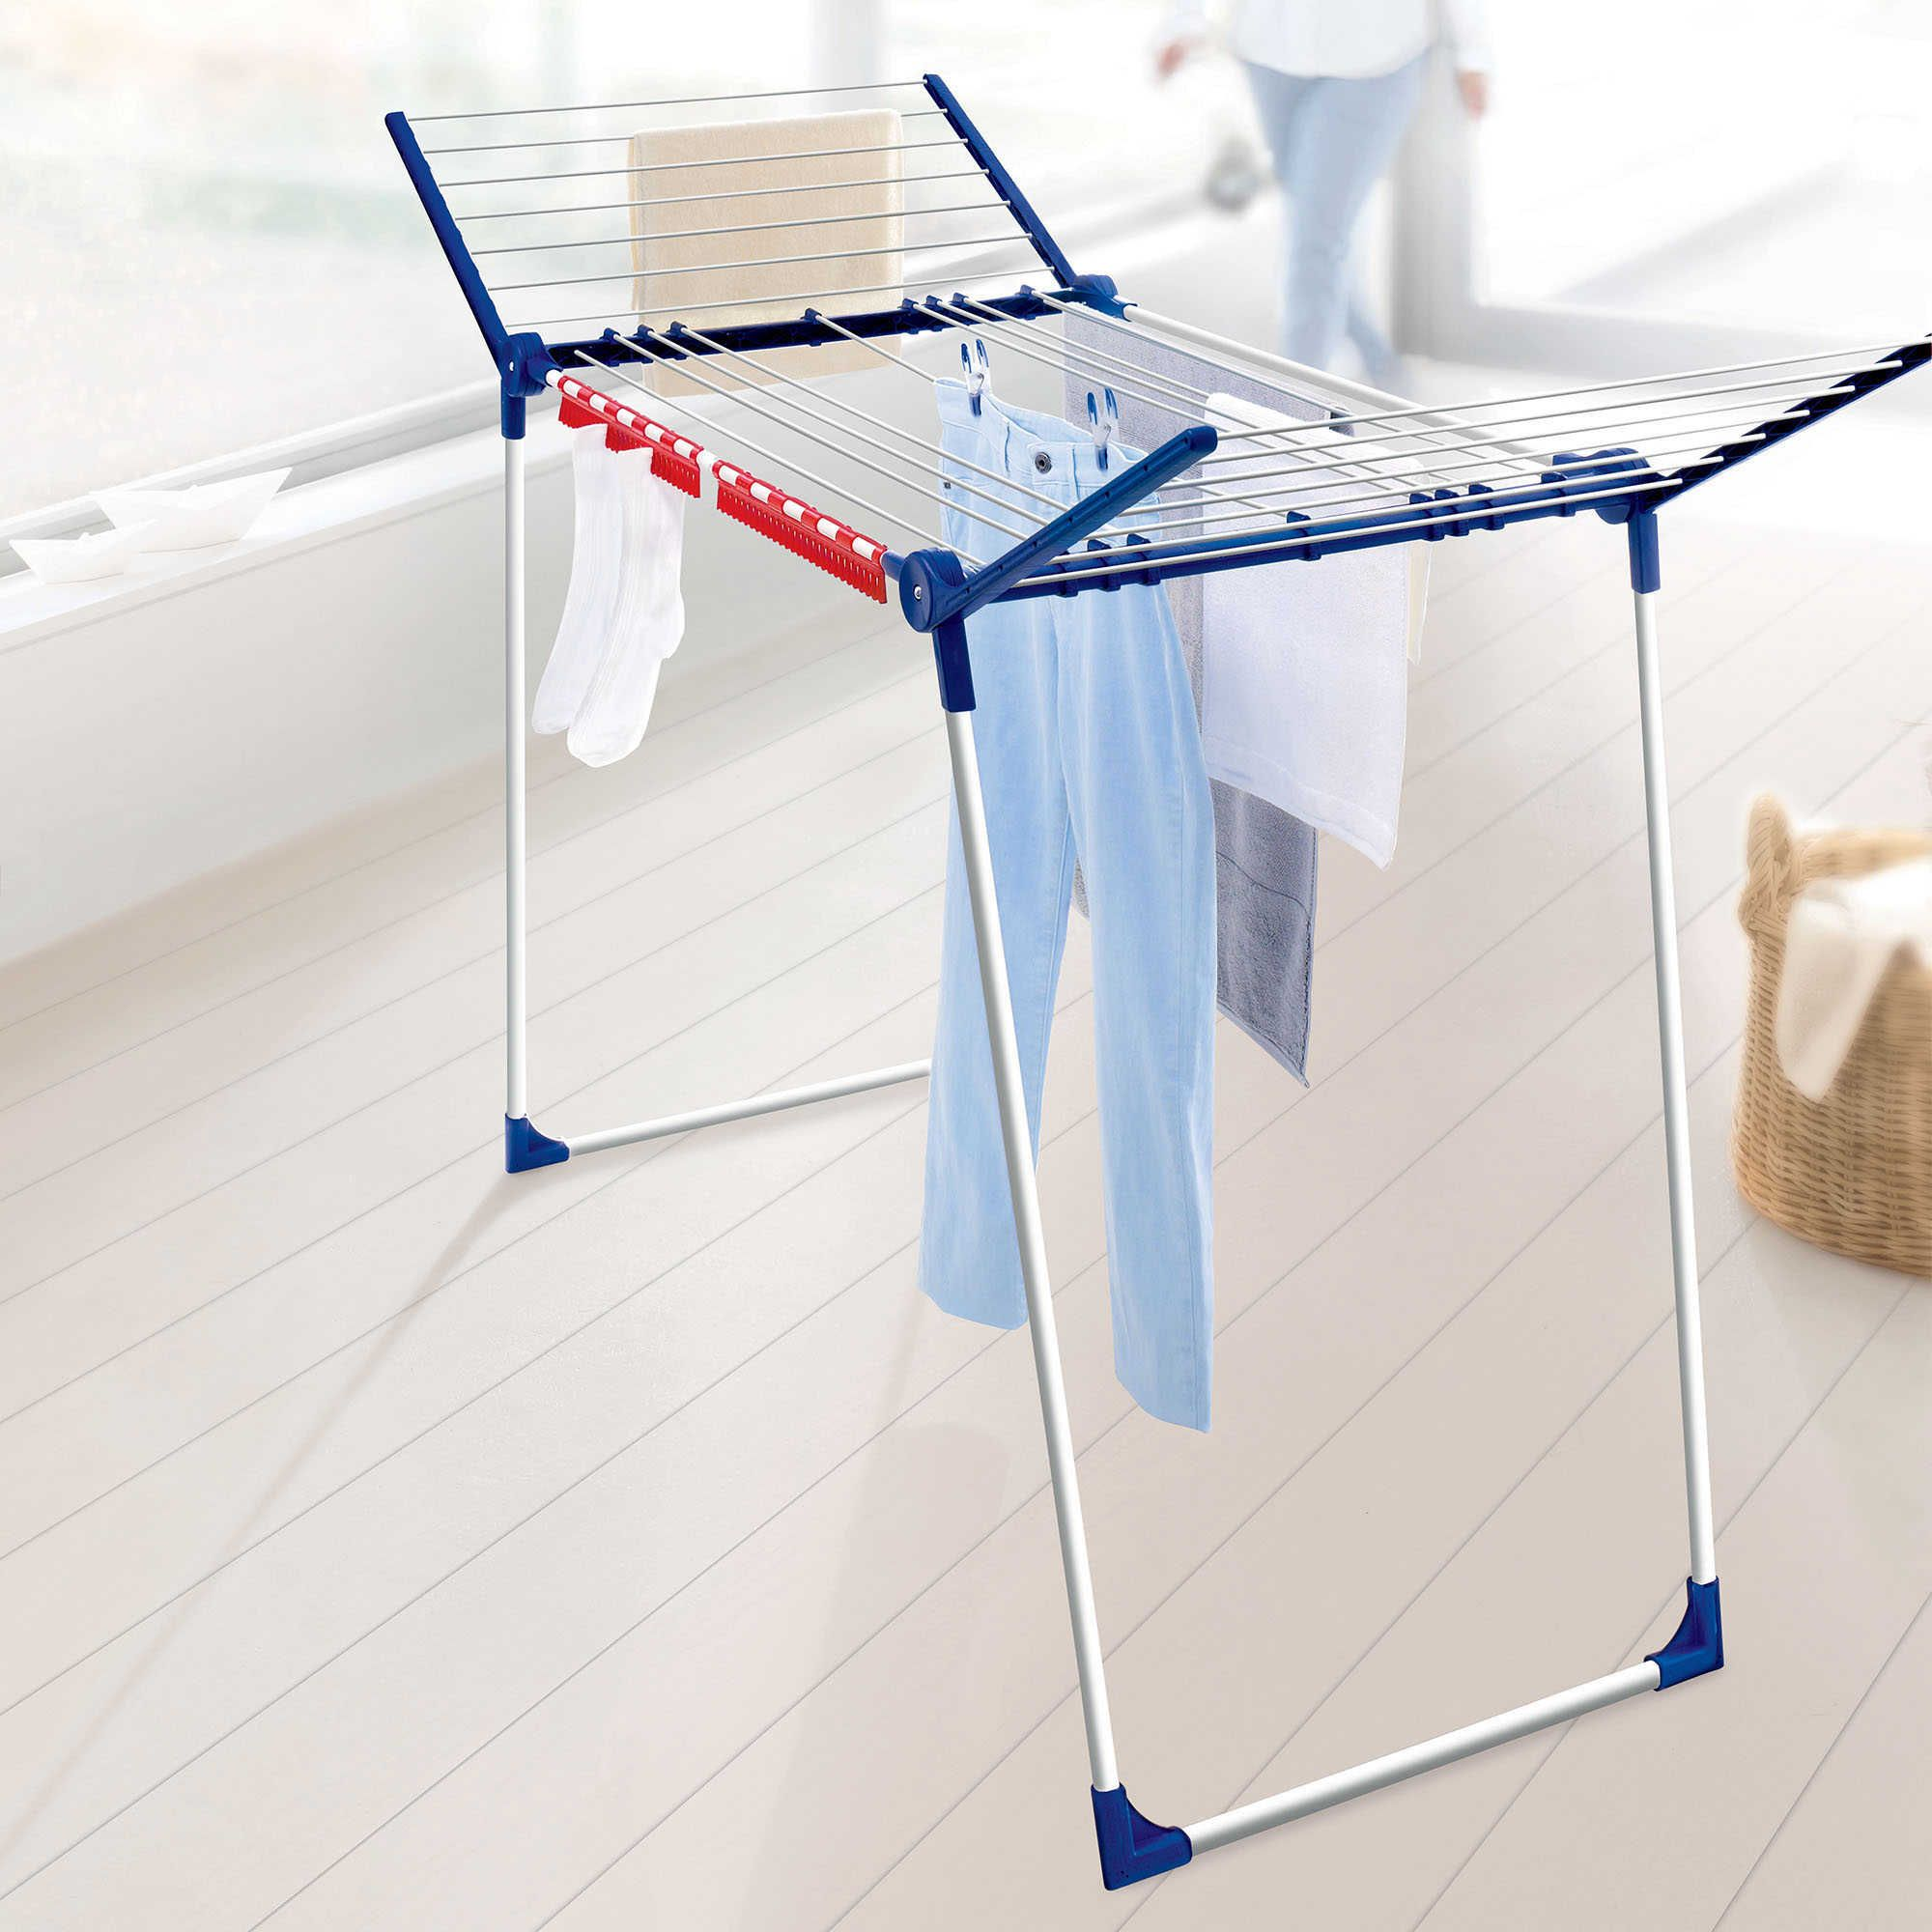 Clothes Drying Rack Walmart Simple Leifheit Varioline Drying Rack  Drying Racks  Pinterest  Laundry Design Decoration